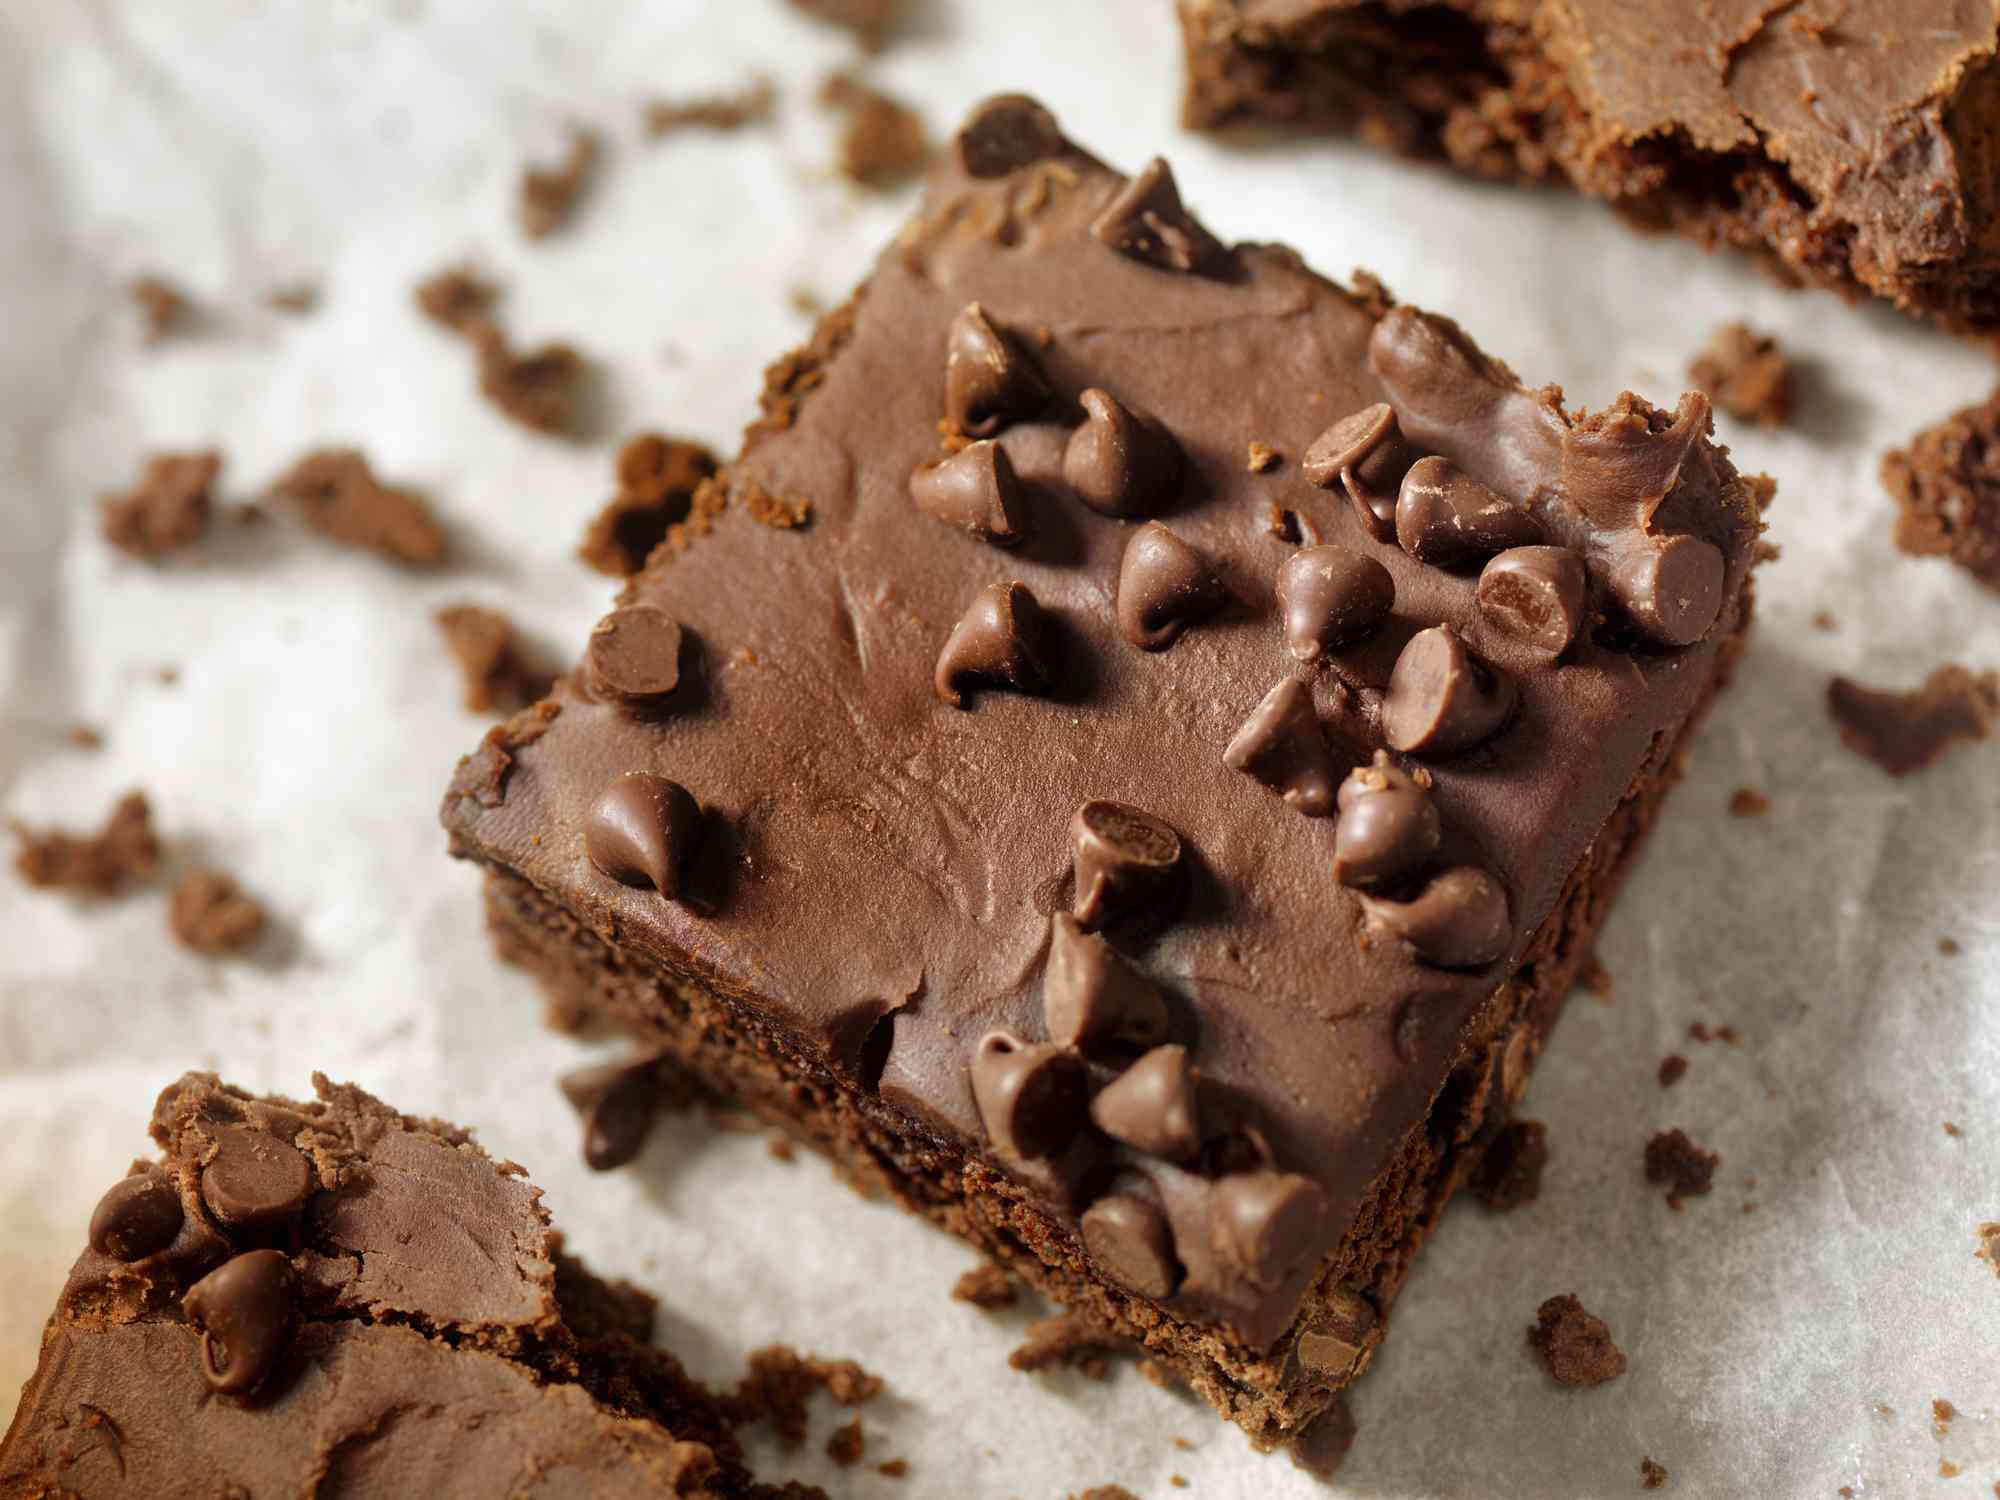 Brownie with chocolate chips